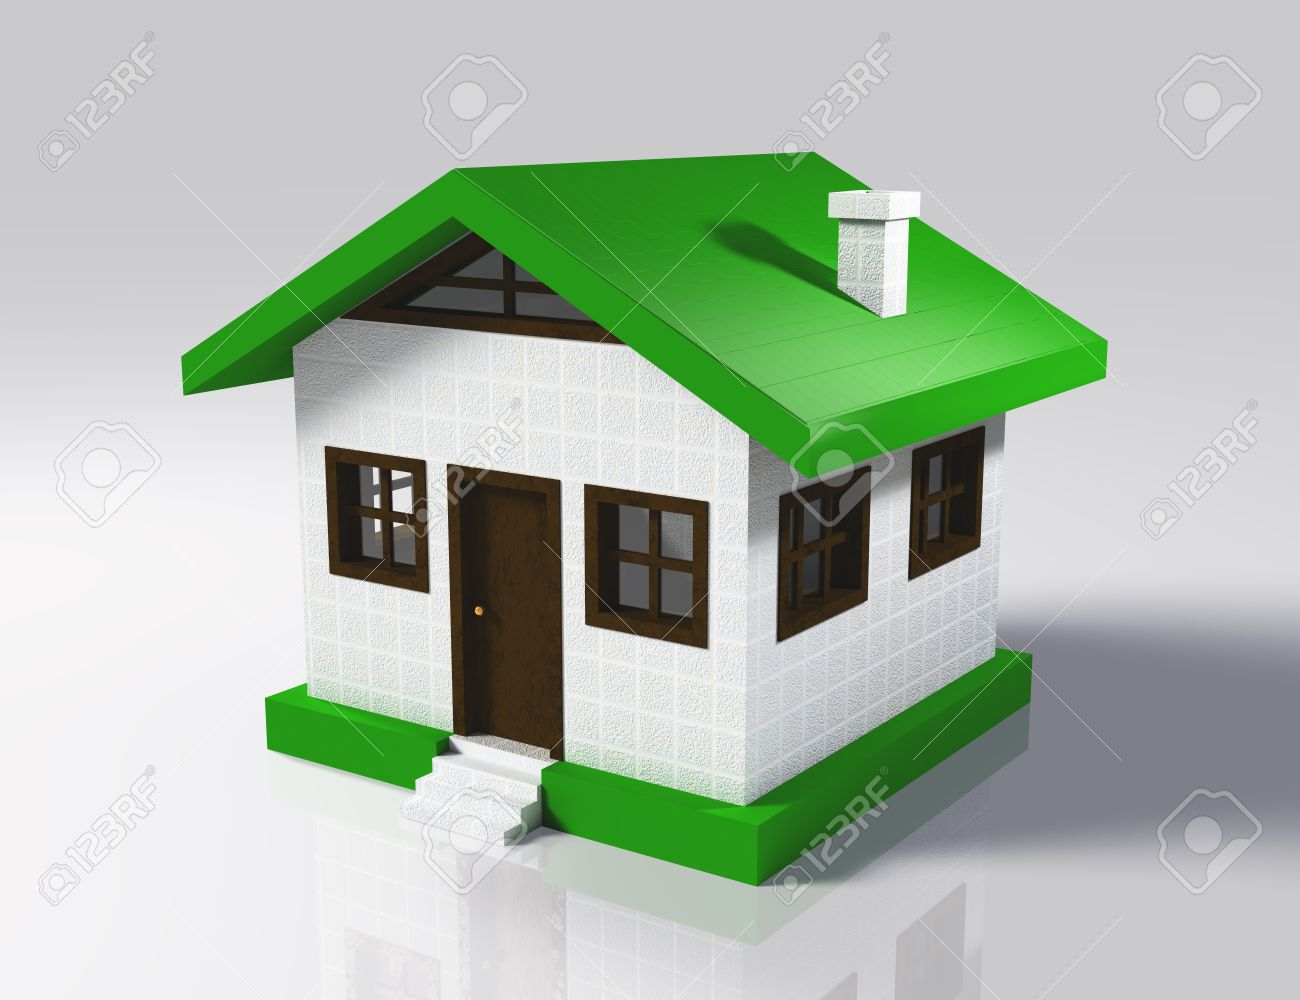 Perfect A 3D Rendering Of A Small Model Of House With Base And Roof That Are Green